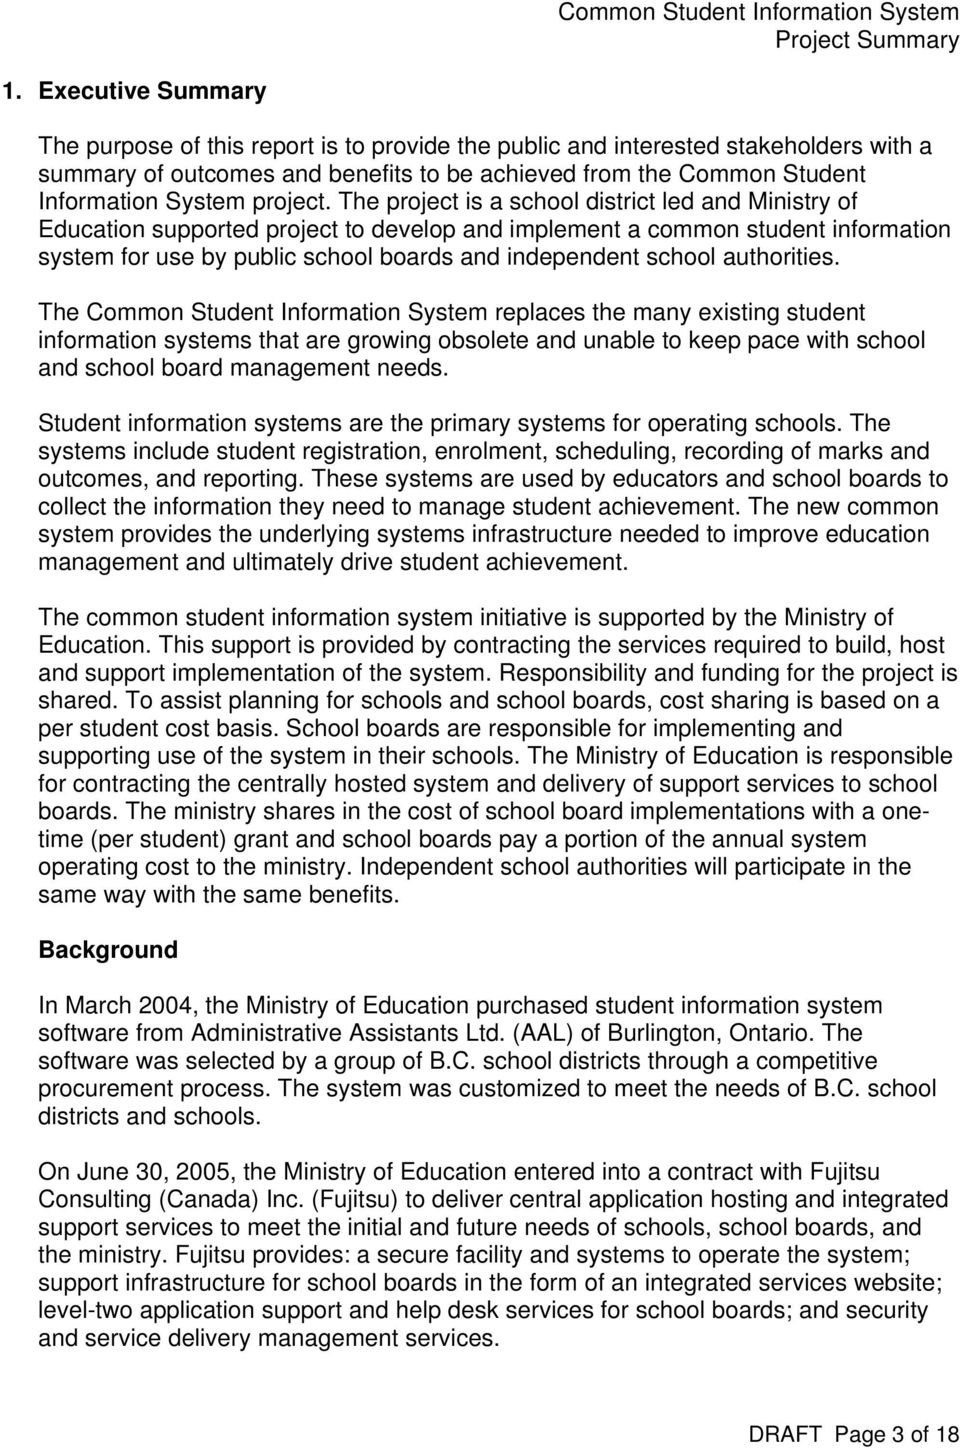 Common Student Information System for Schools and School Boards